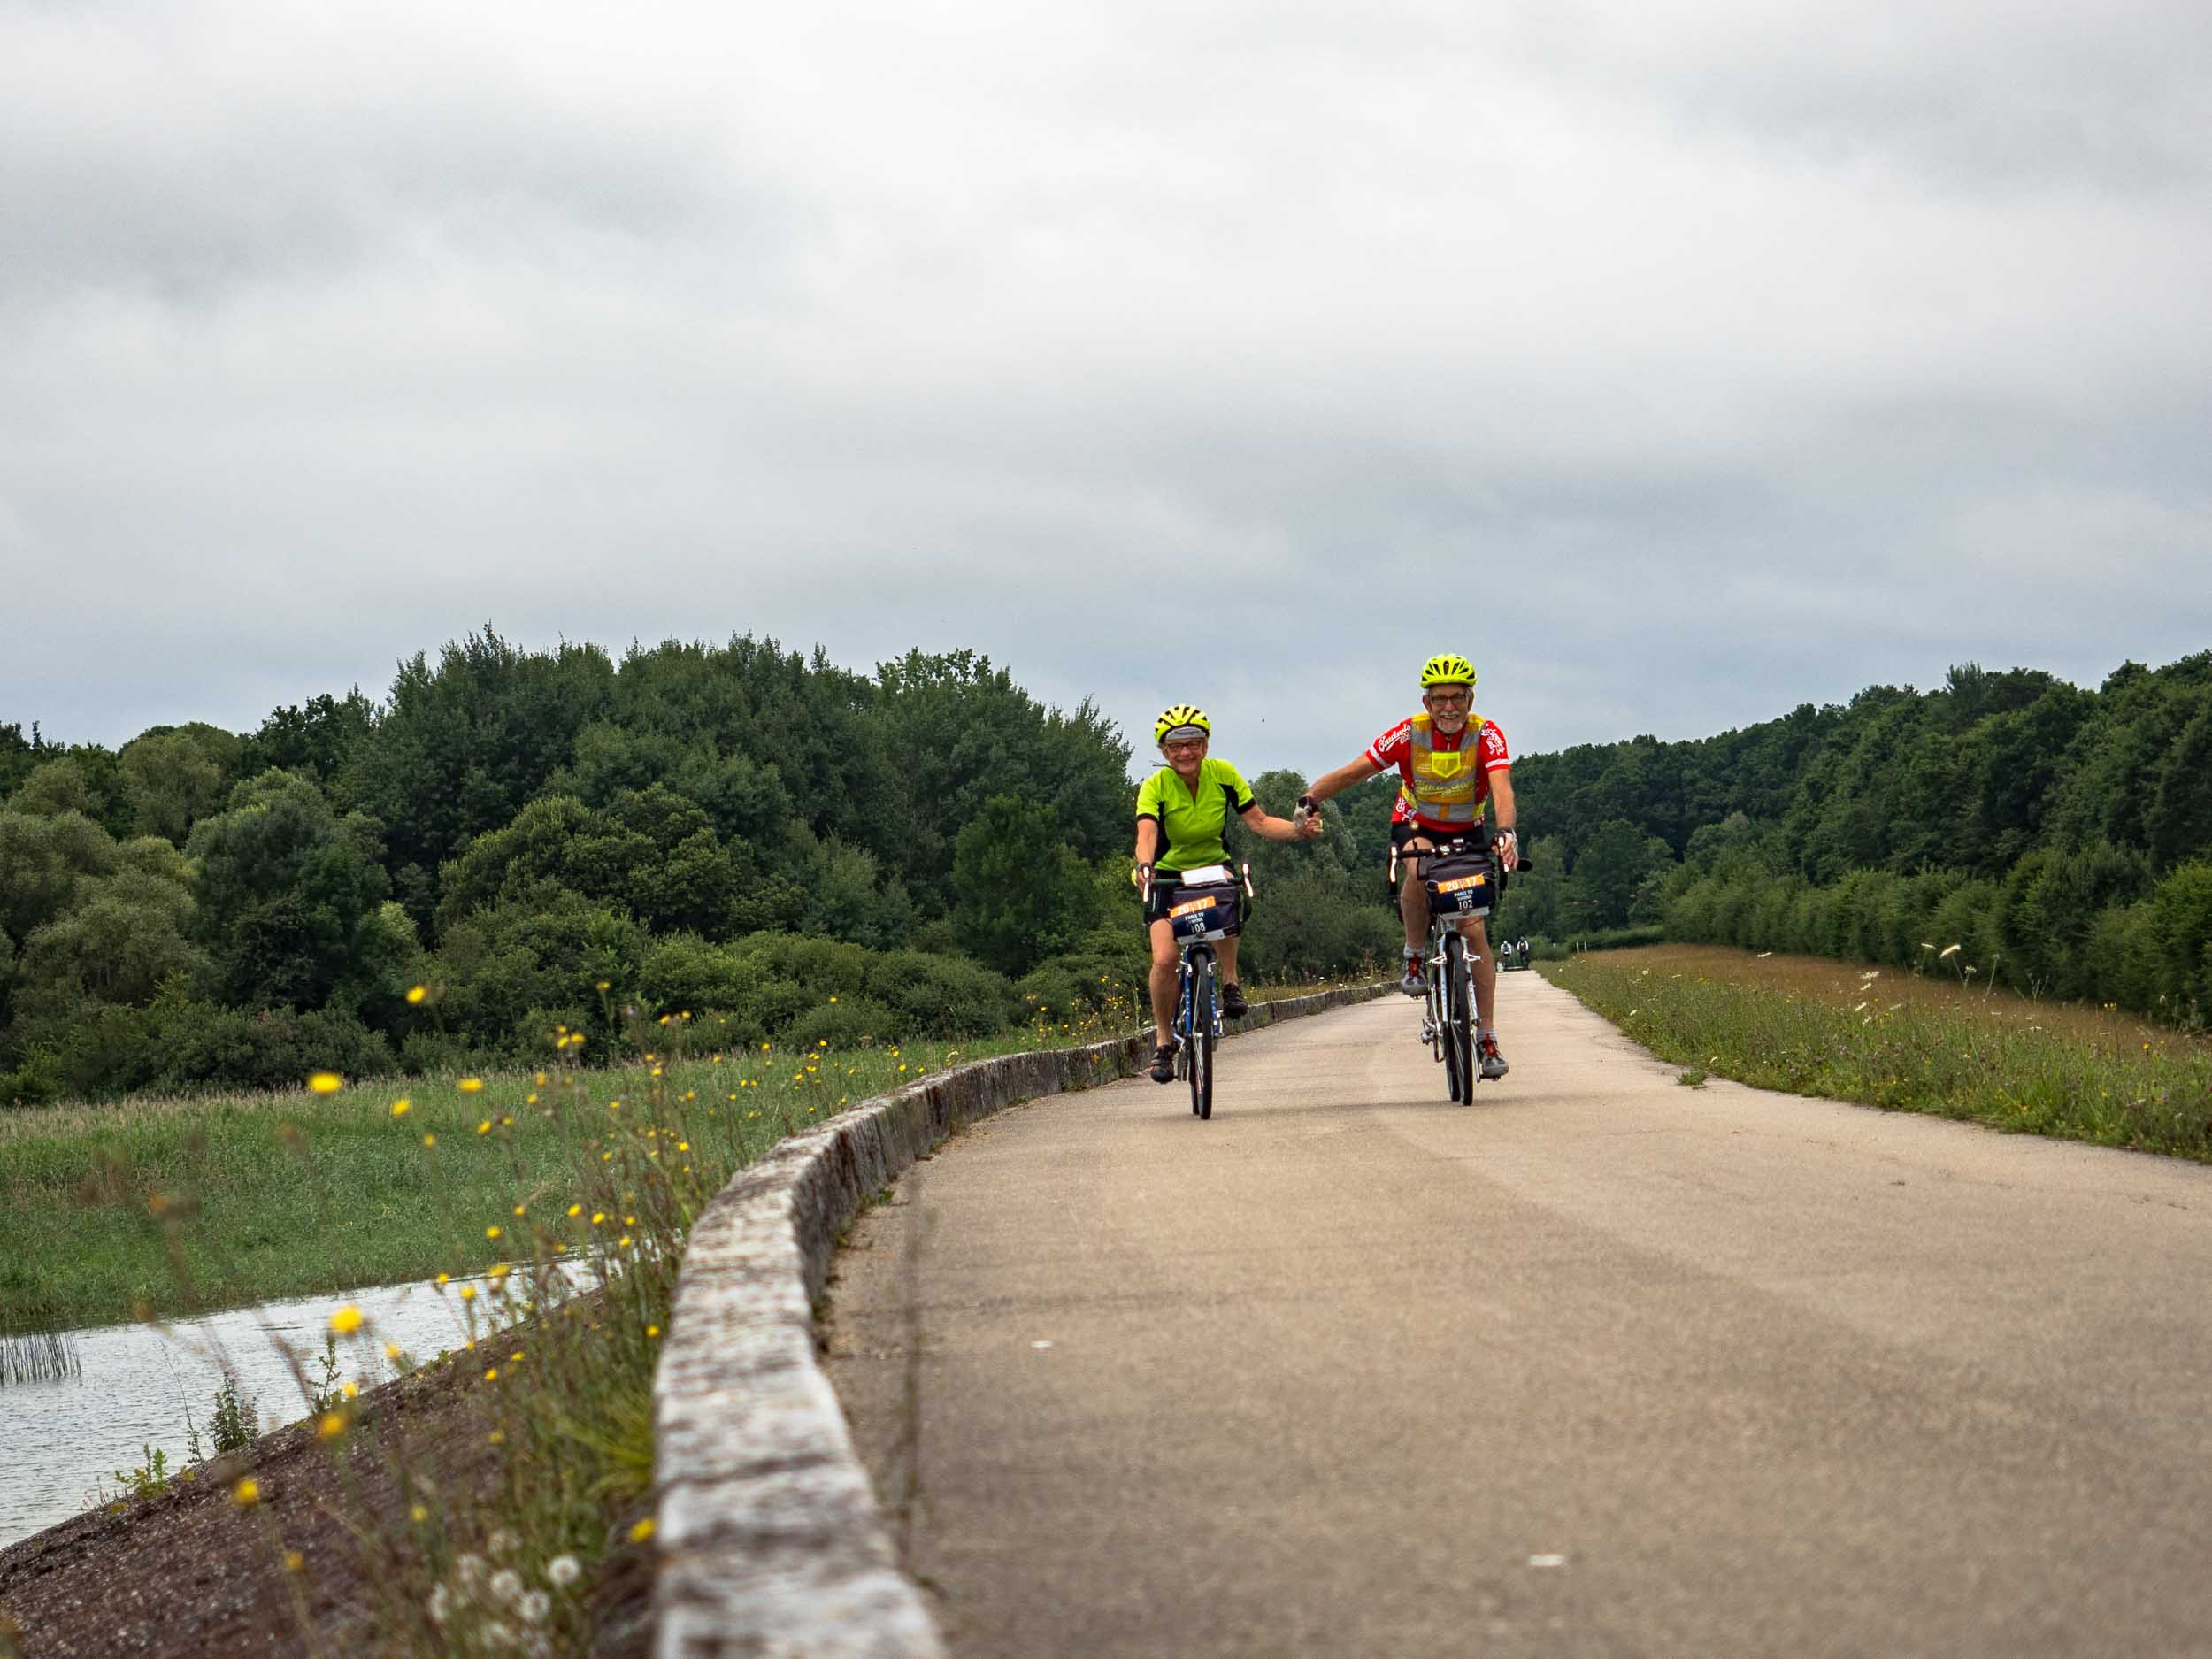 tda-cycling-paris-freiburg-holding-hands.jpg